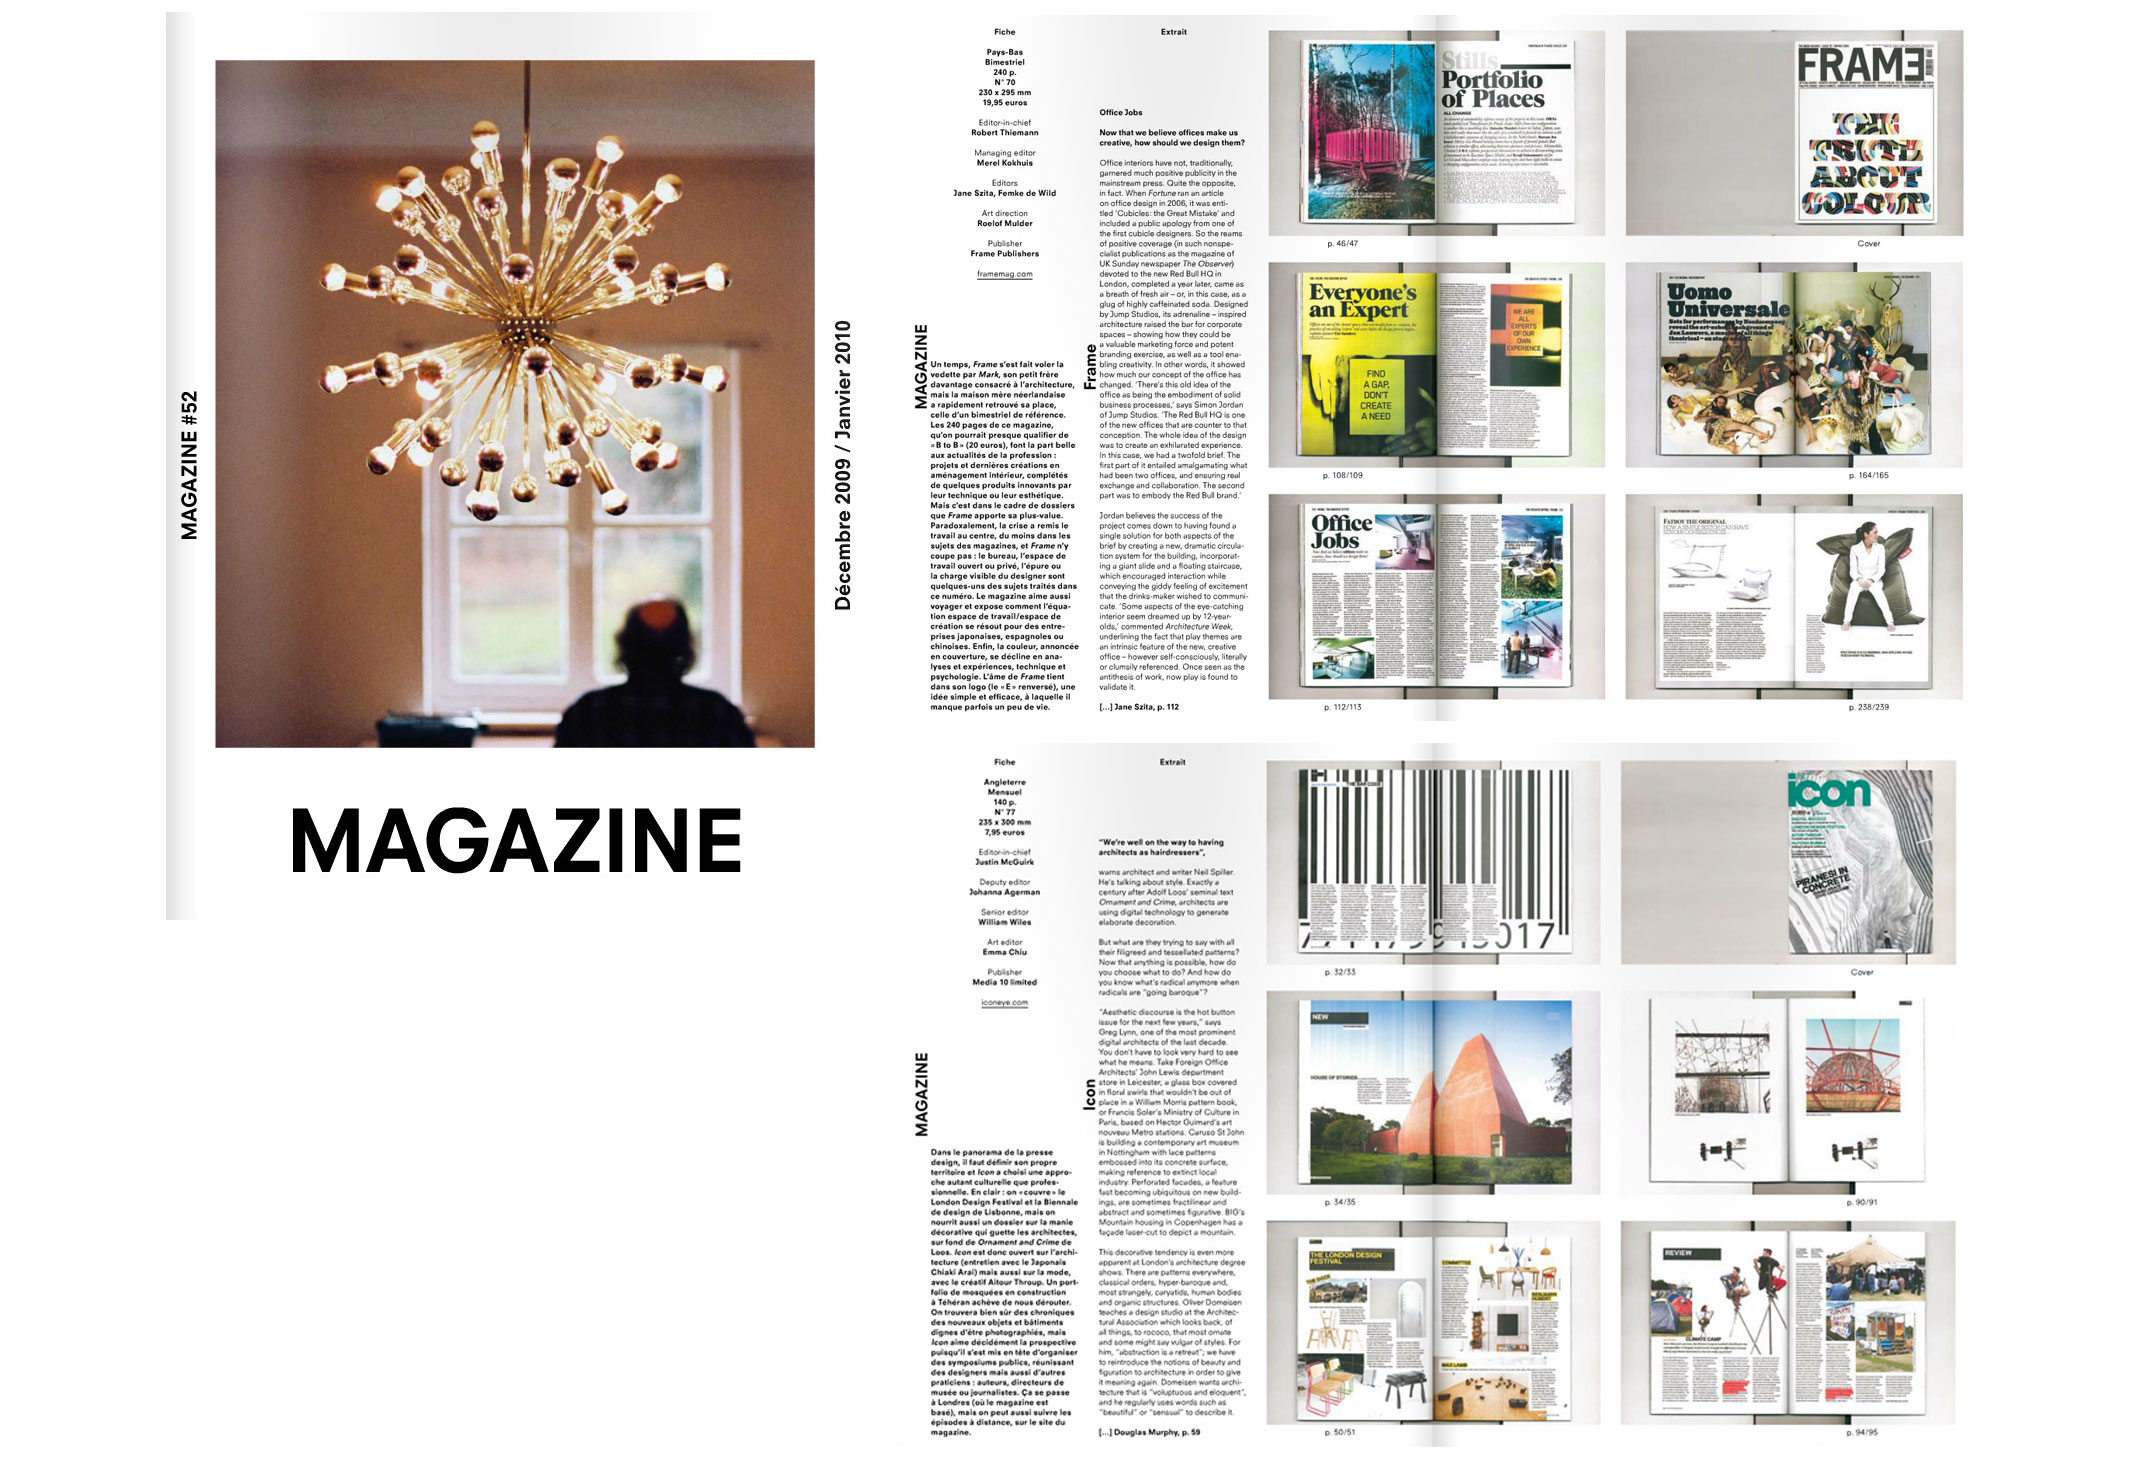 magazine-magazine-num-52-please-letmedesign-2010